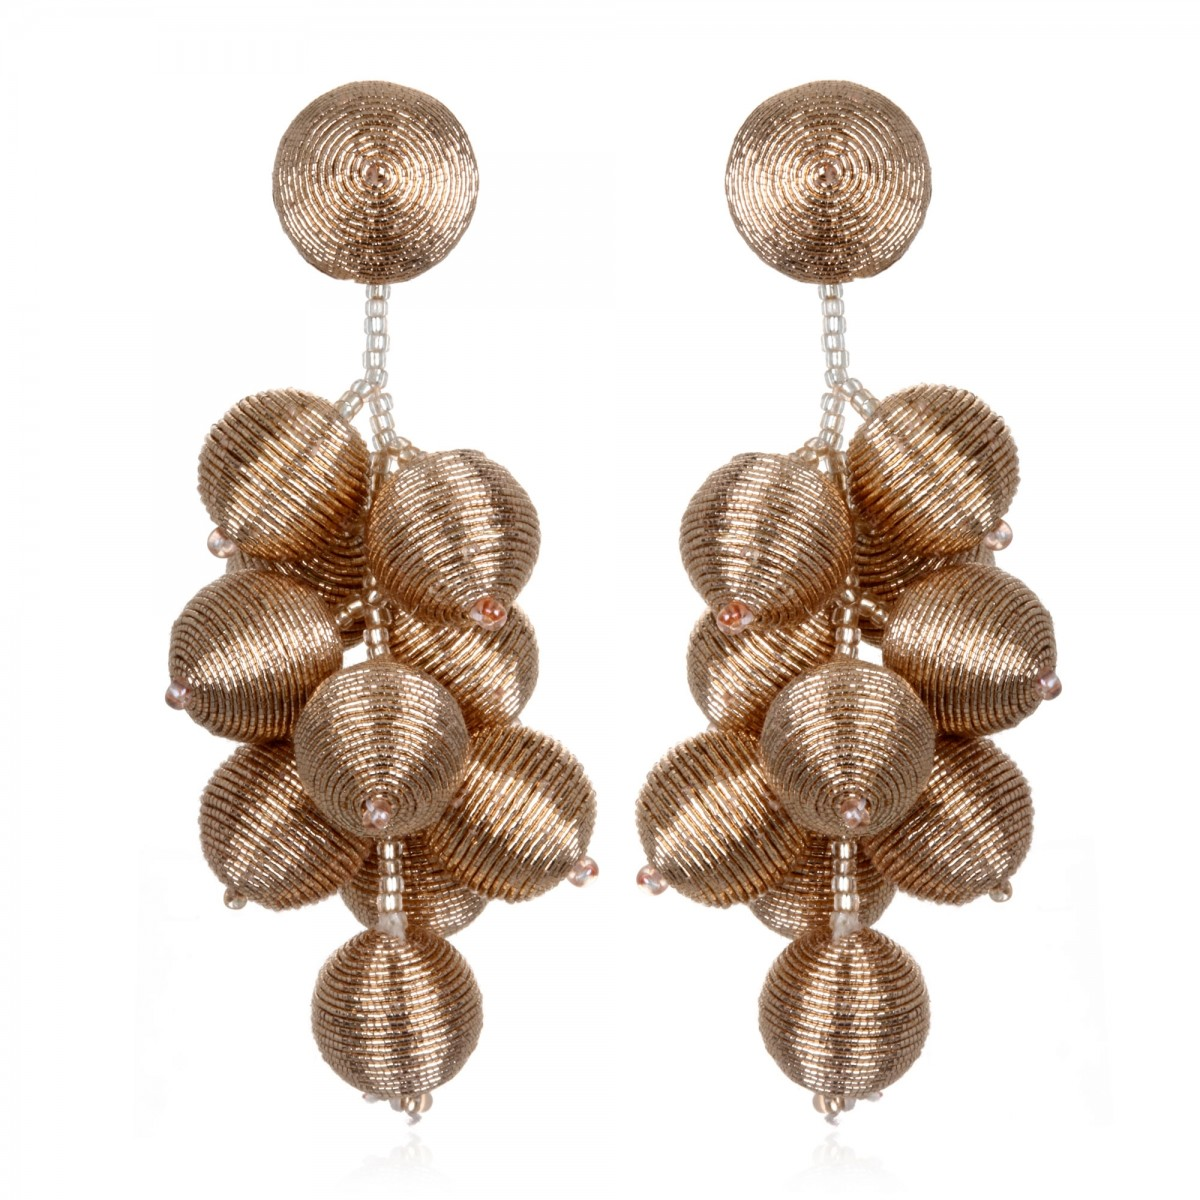 Rose Gold Cluster Earrings by SUZANNA DAI